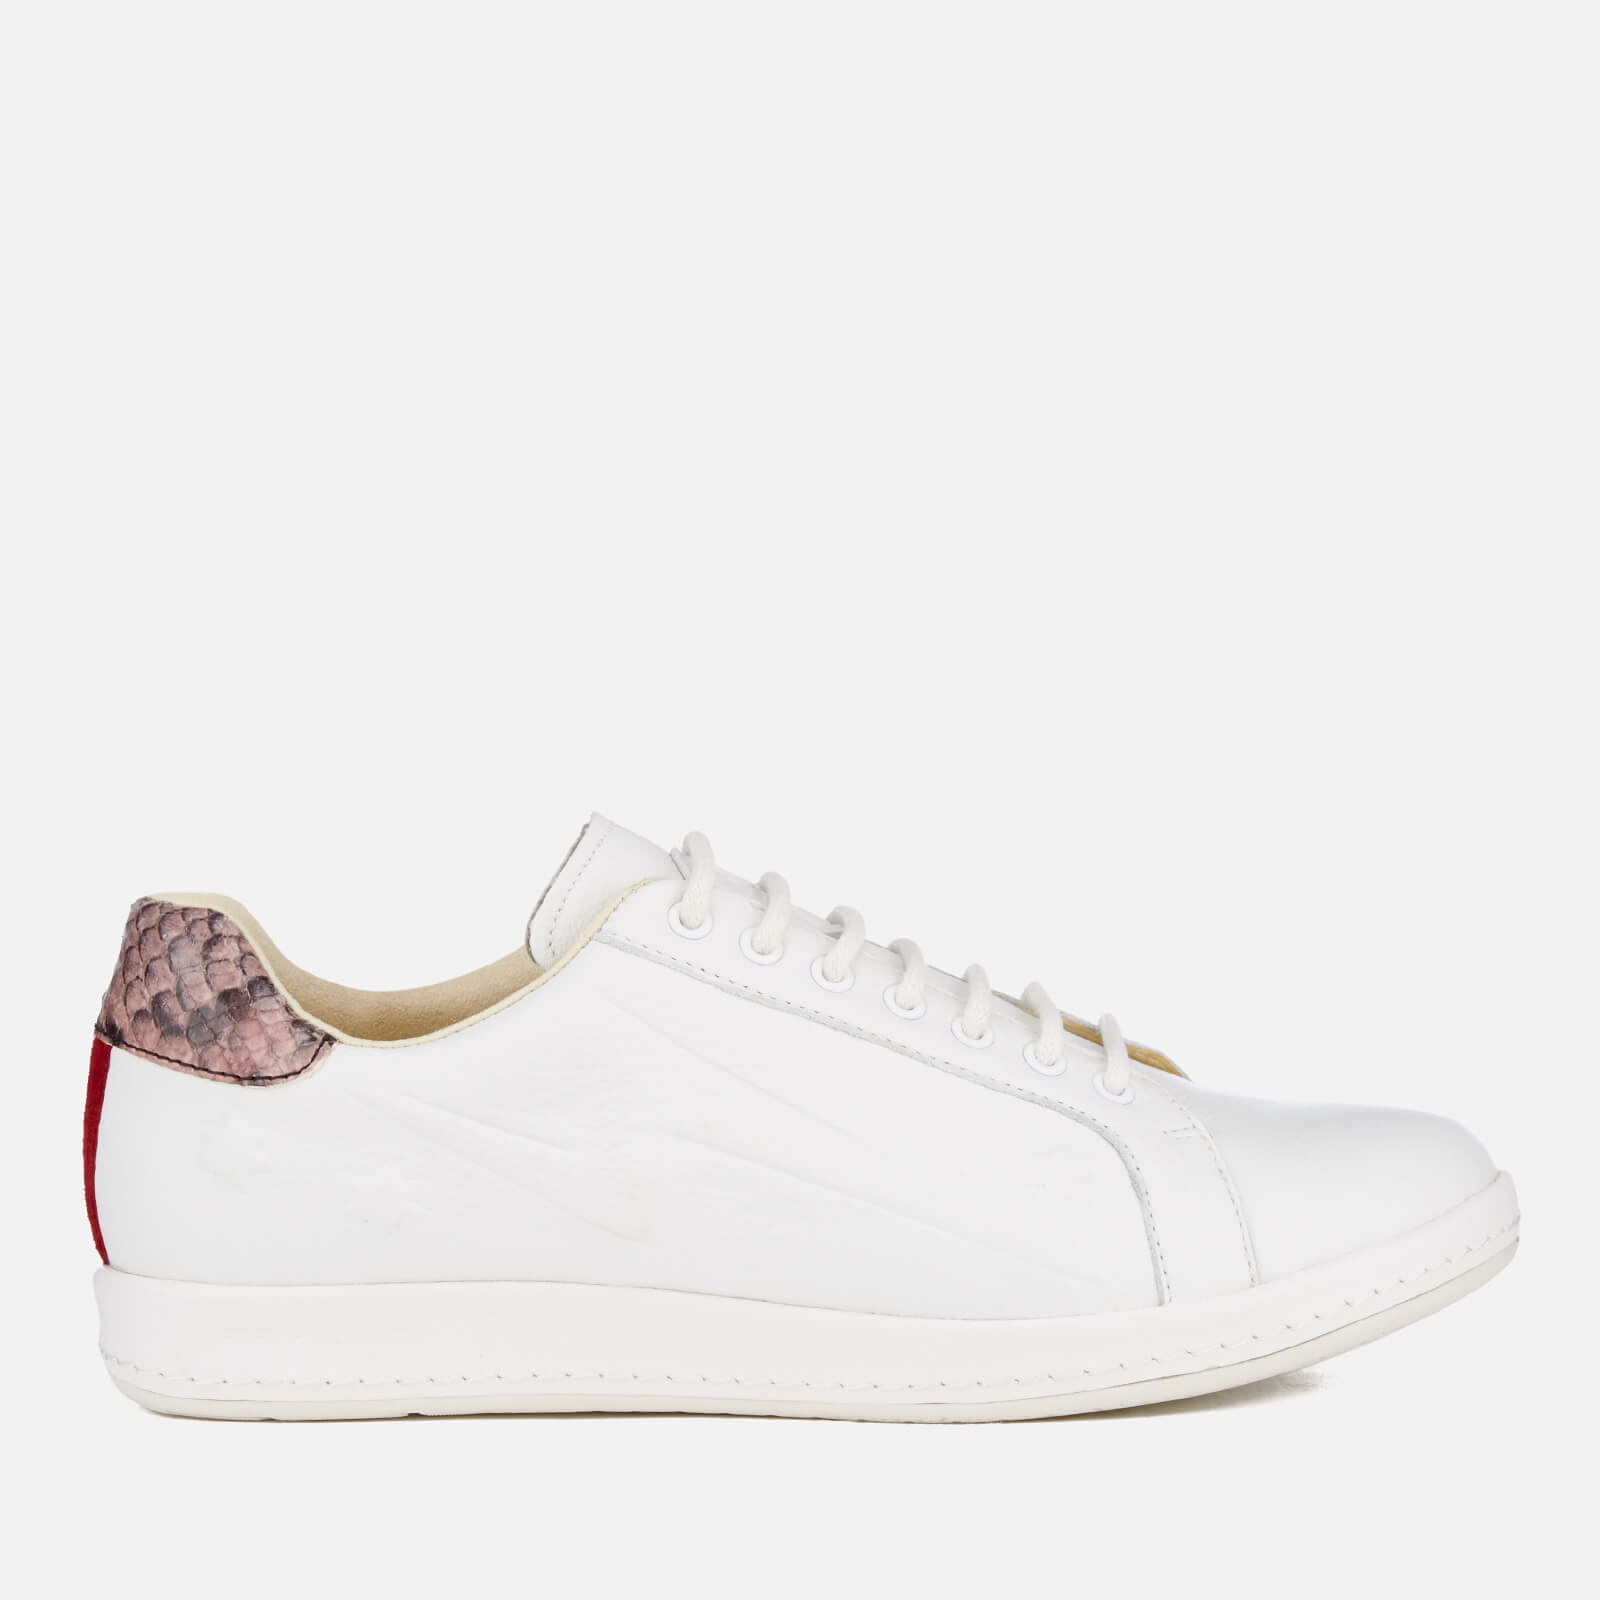 564f86853fb PS by Paul Smith Women's Lapin Star Embossed Trainers - White - Free UK  Delivery over £50